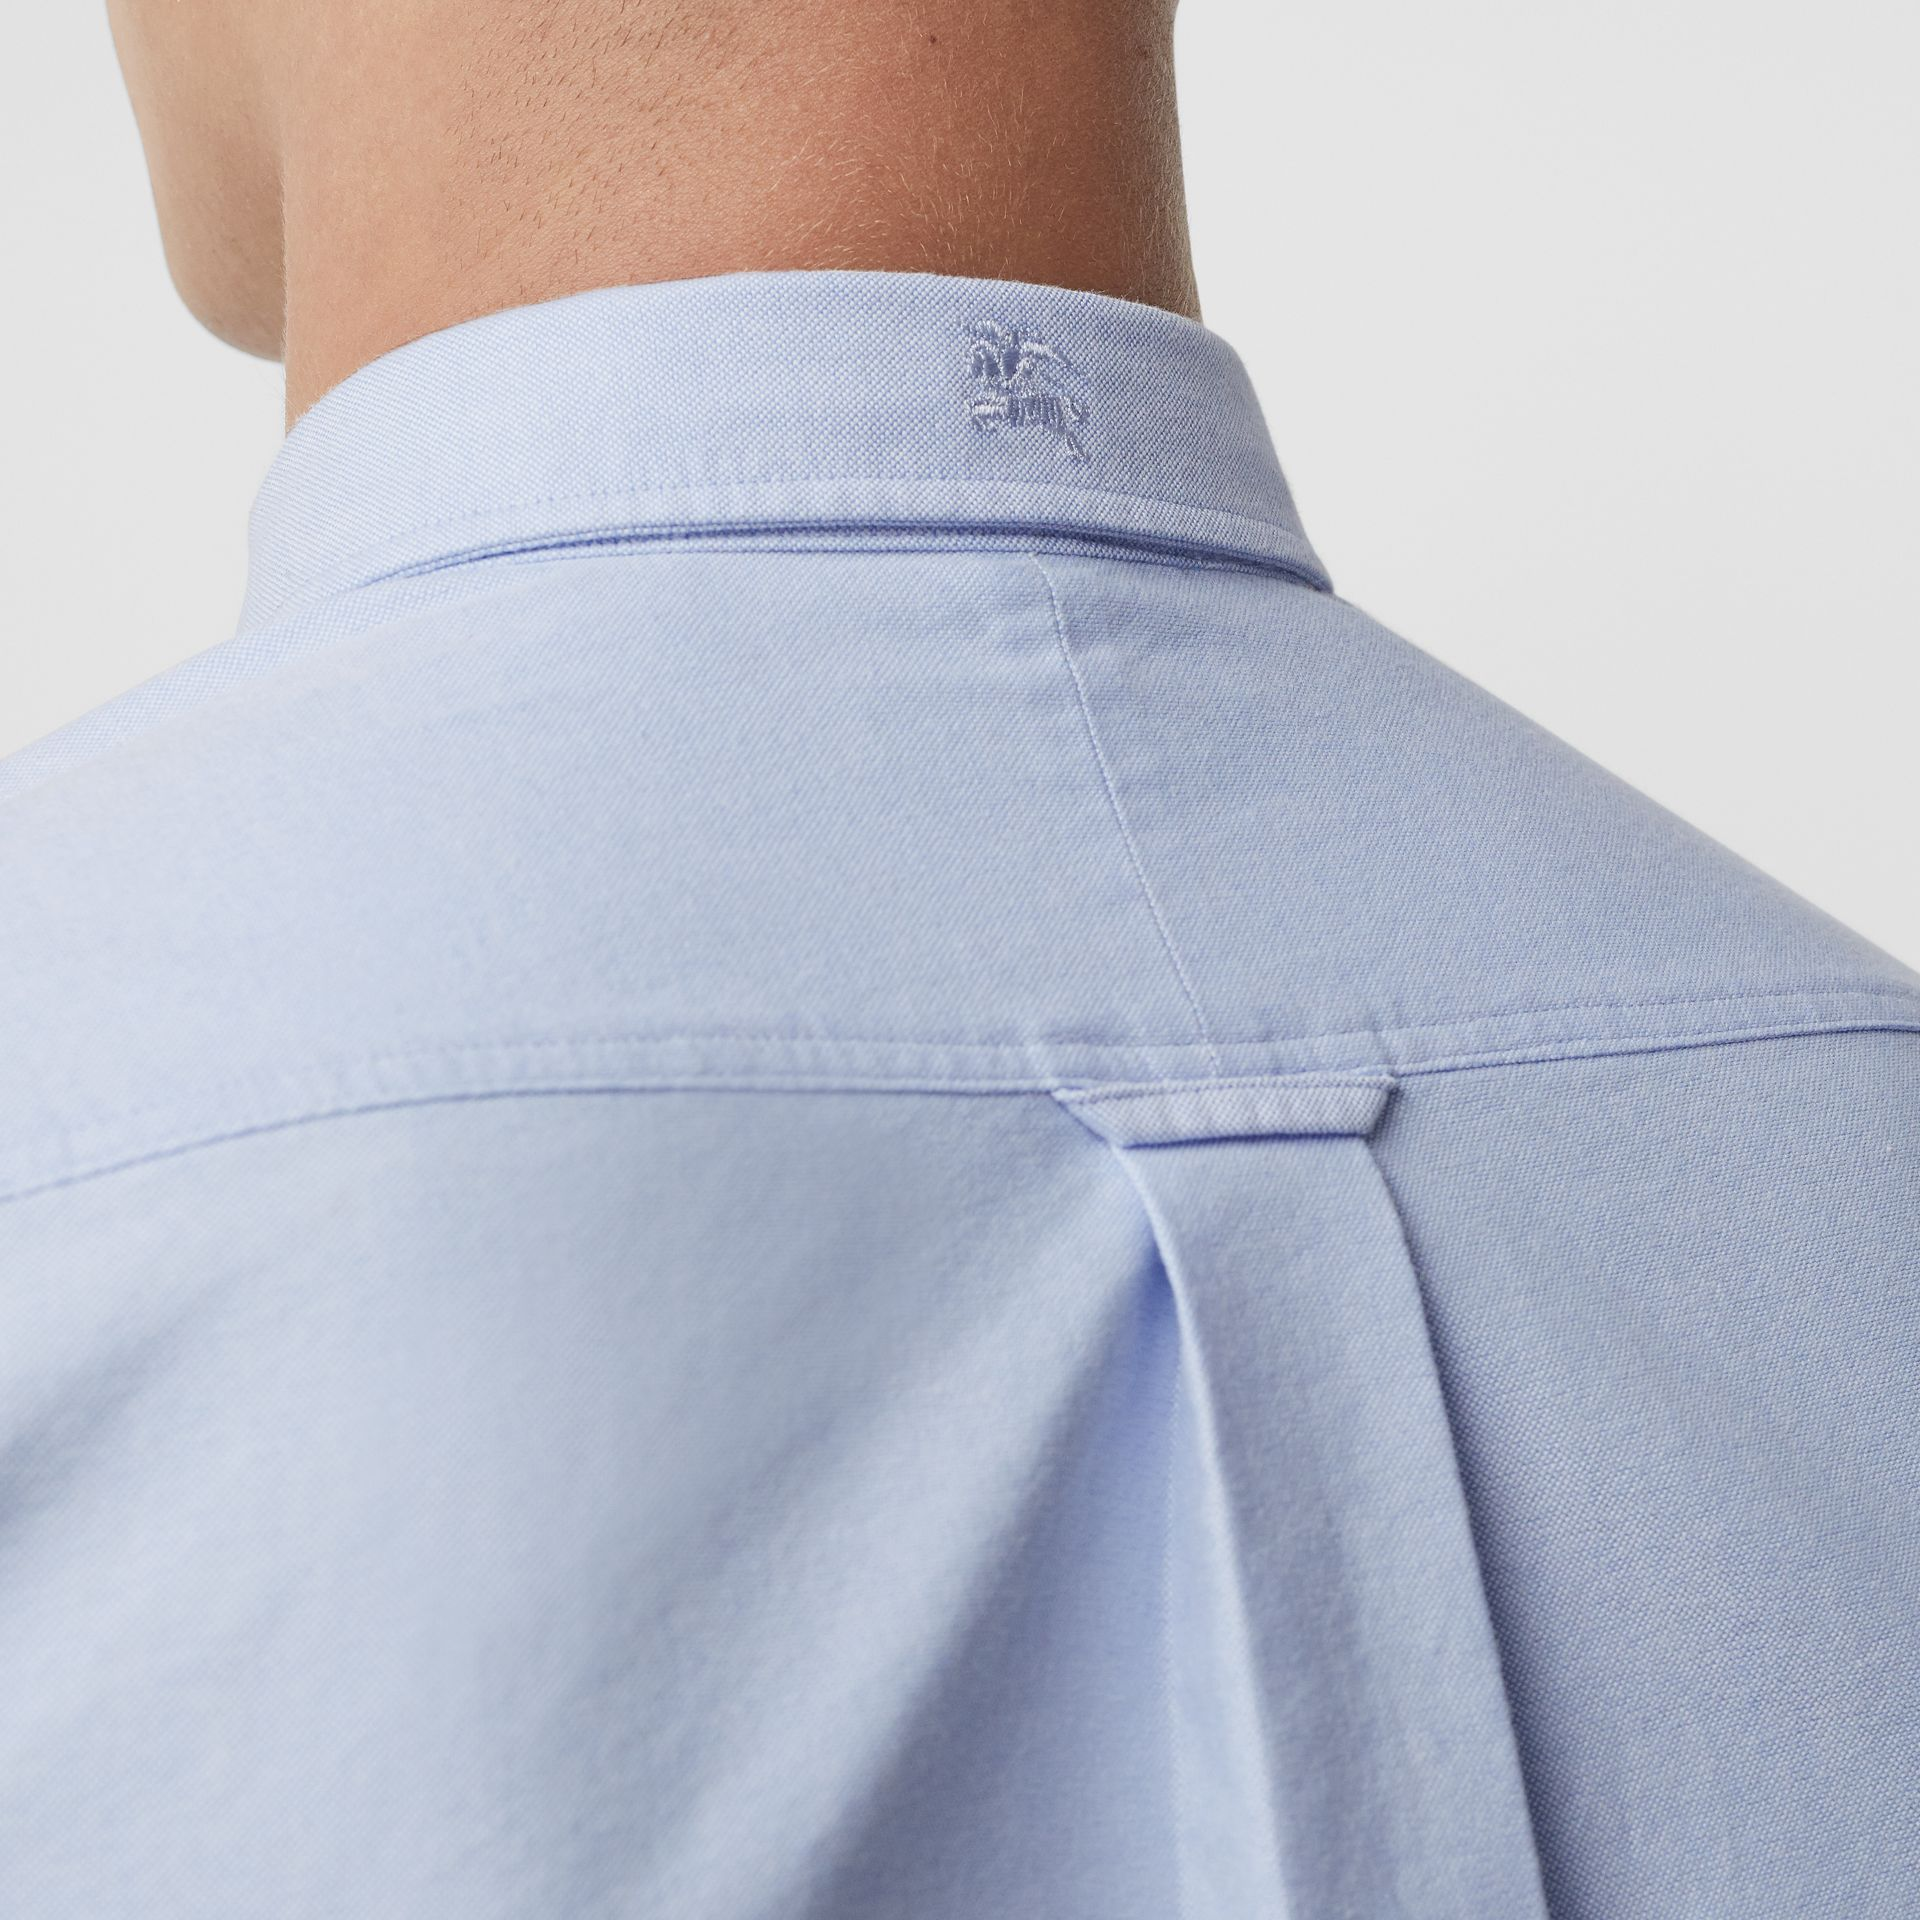 Check Cuff Cotton Oxford Shirt in Cornflower Blue - Men | Burberry Australia - gallery image 4